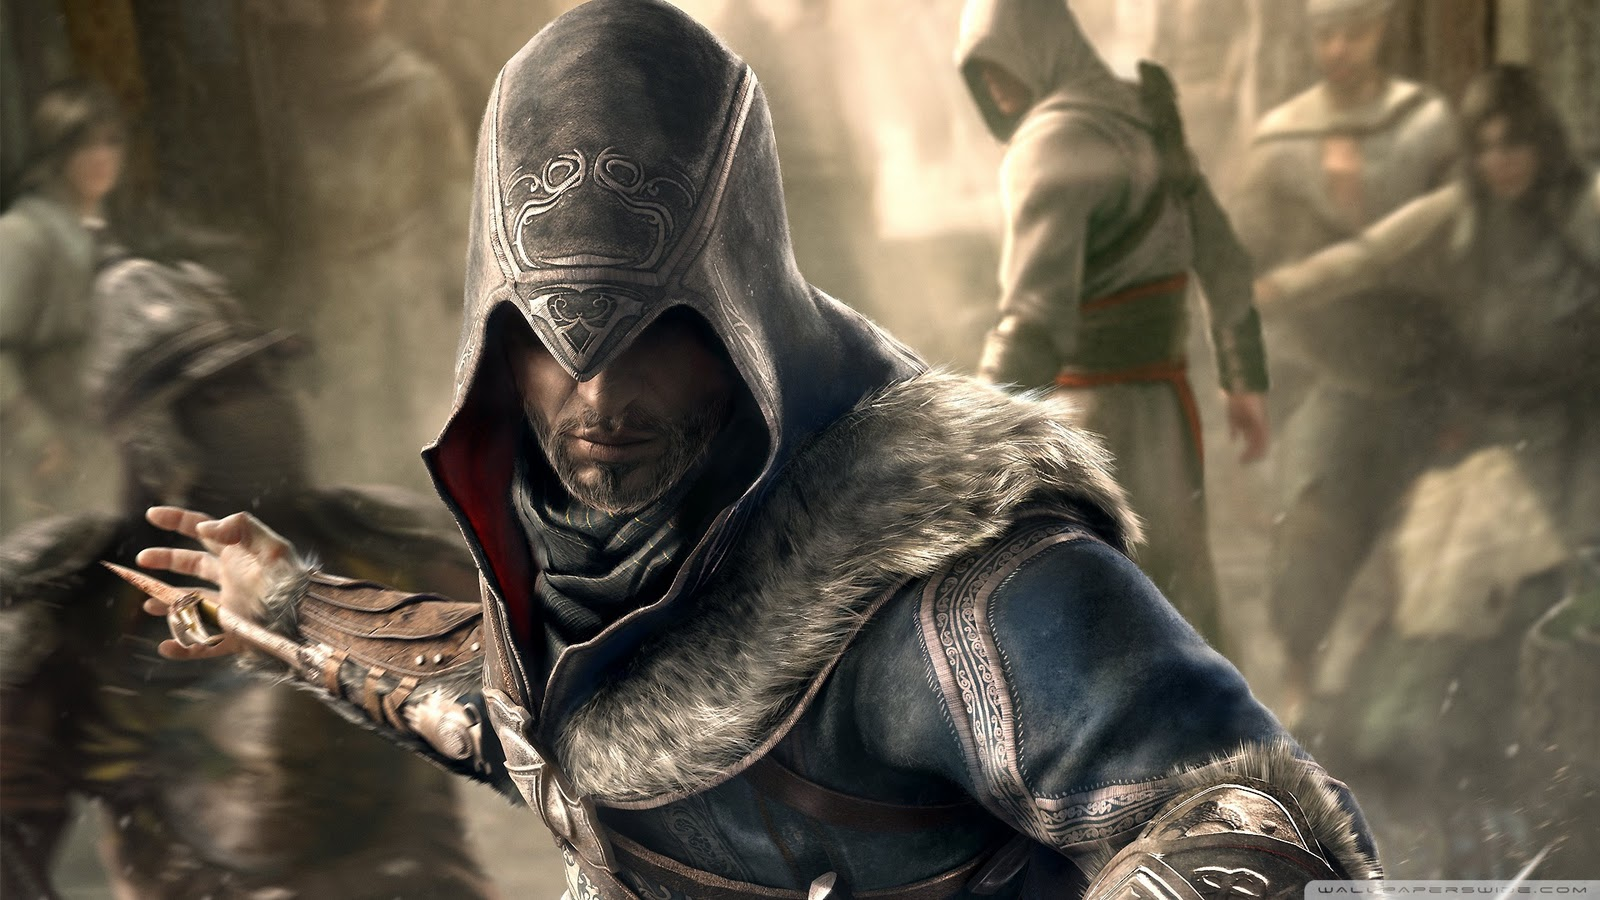 Assassin s Creed Revelations Wallpaper (HD) - assassins creed revelations wallpapers